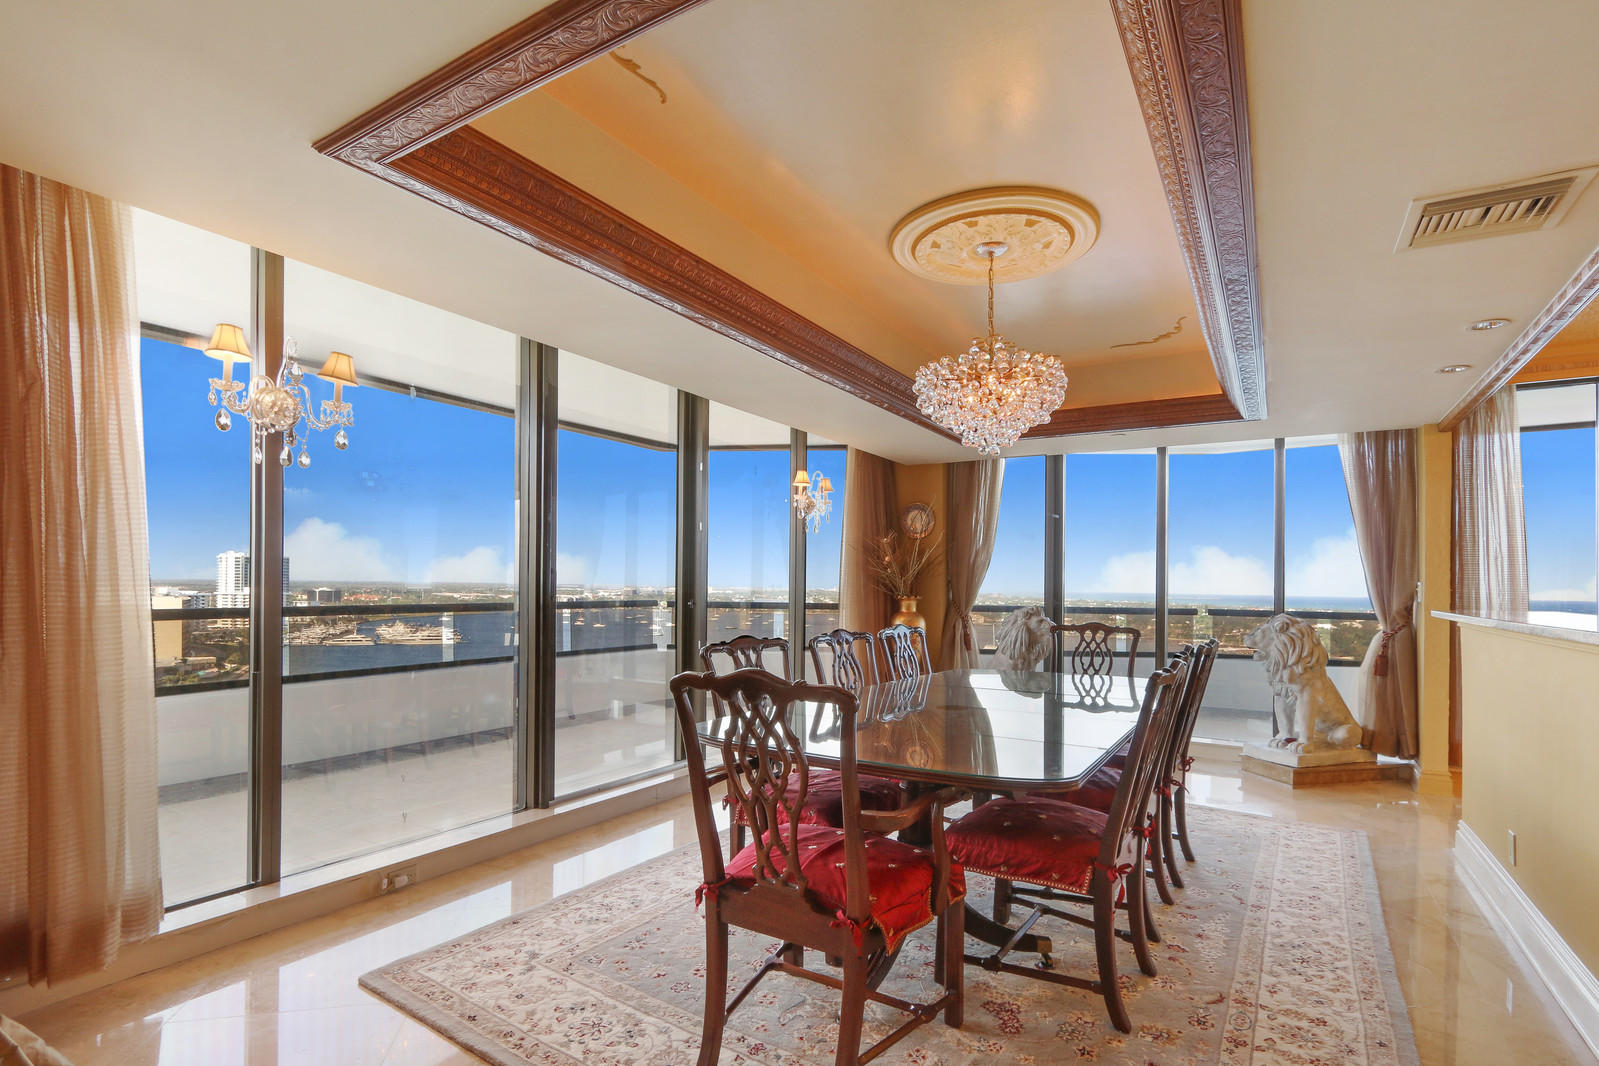 OLD PORT COVE LAKE POINT TOWER COND UNIT 1652